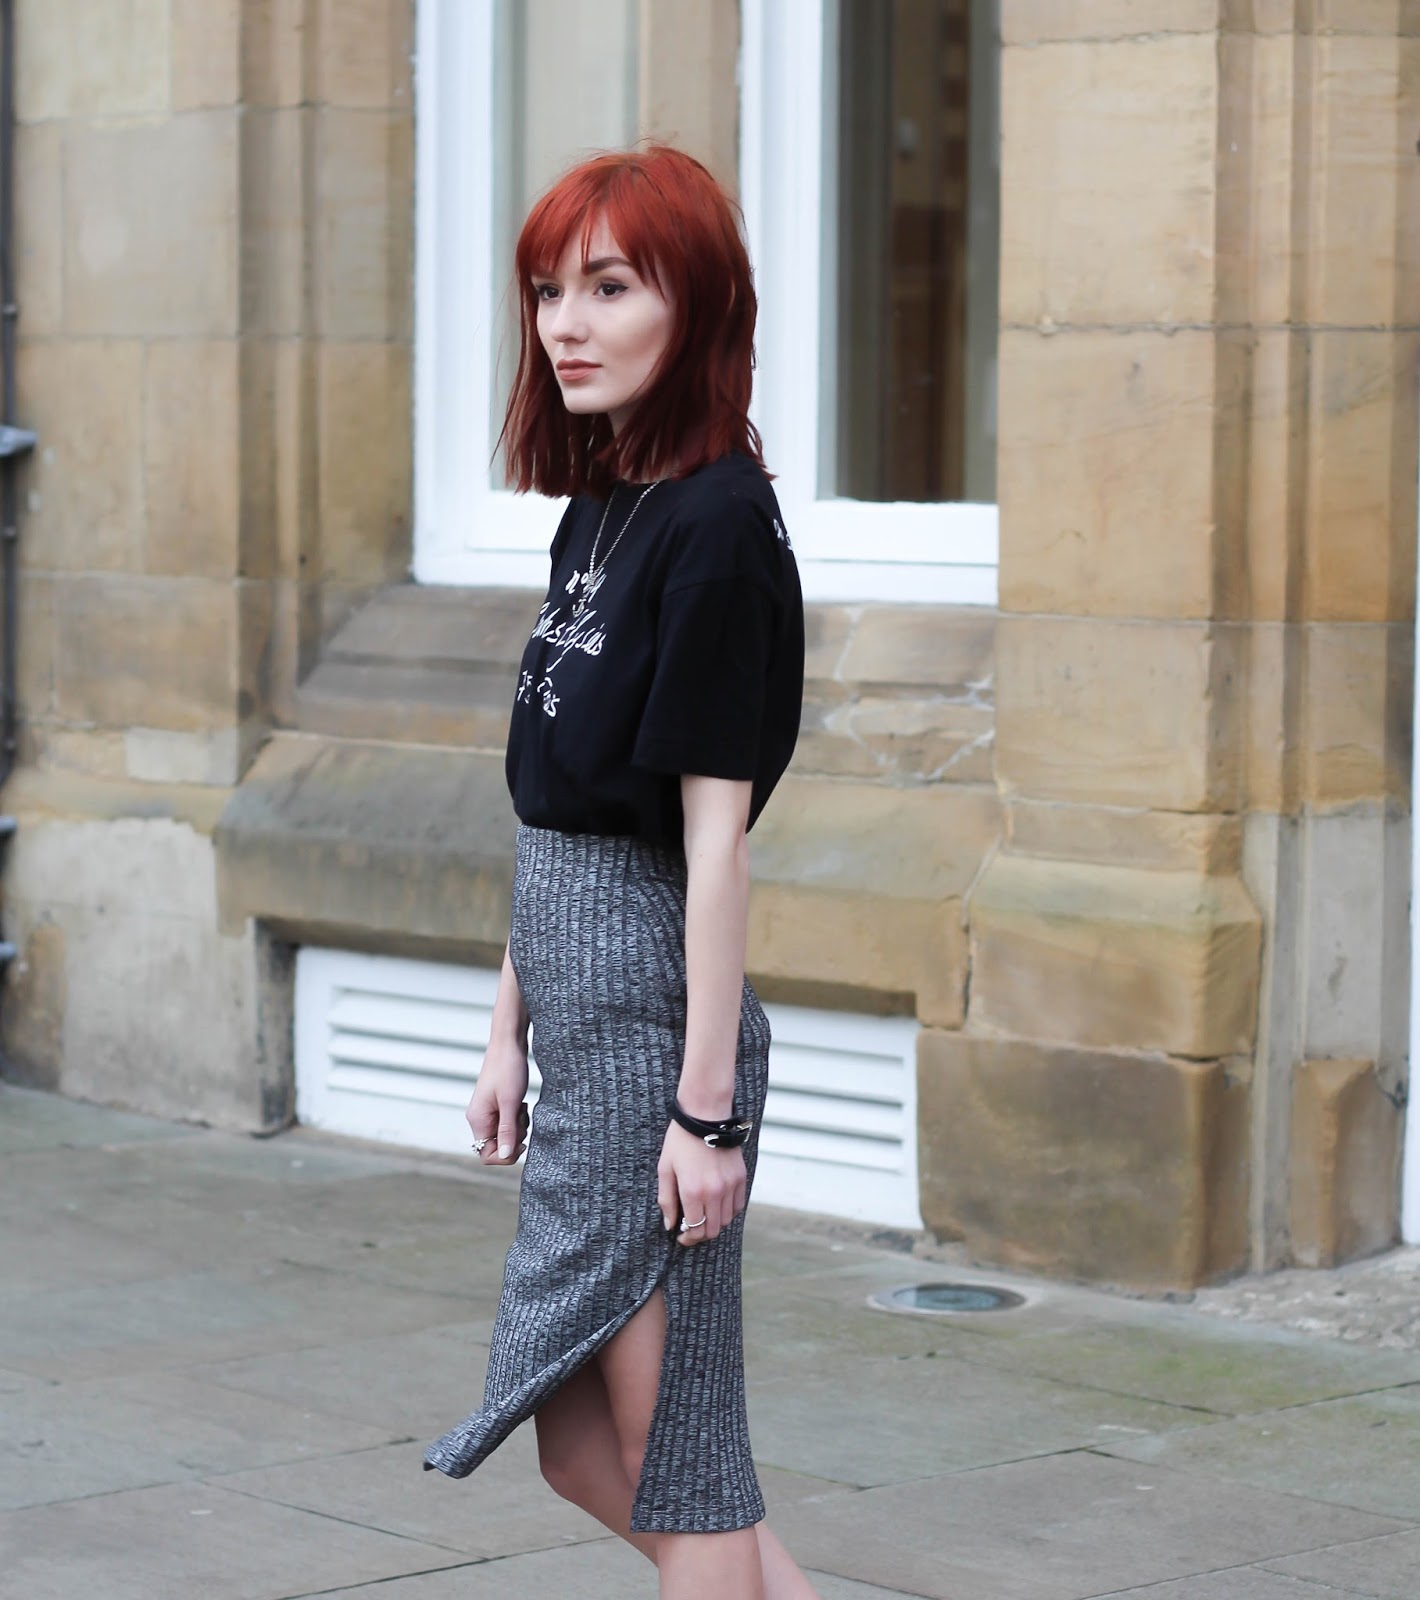 f7449251ca89 Usually I'm a mini skirt girl only but these past few months things have  changed. I wore the metallic pink midi skirt in a post a couple of weeks  ago and ...